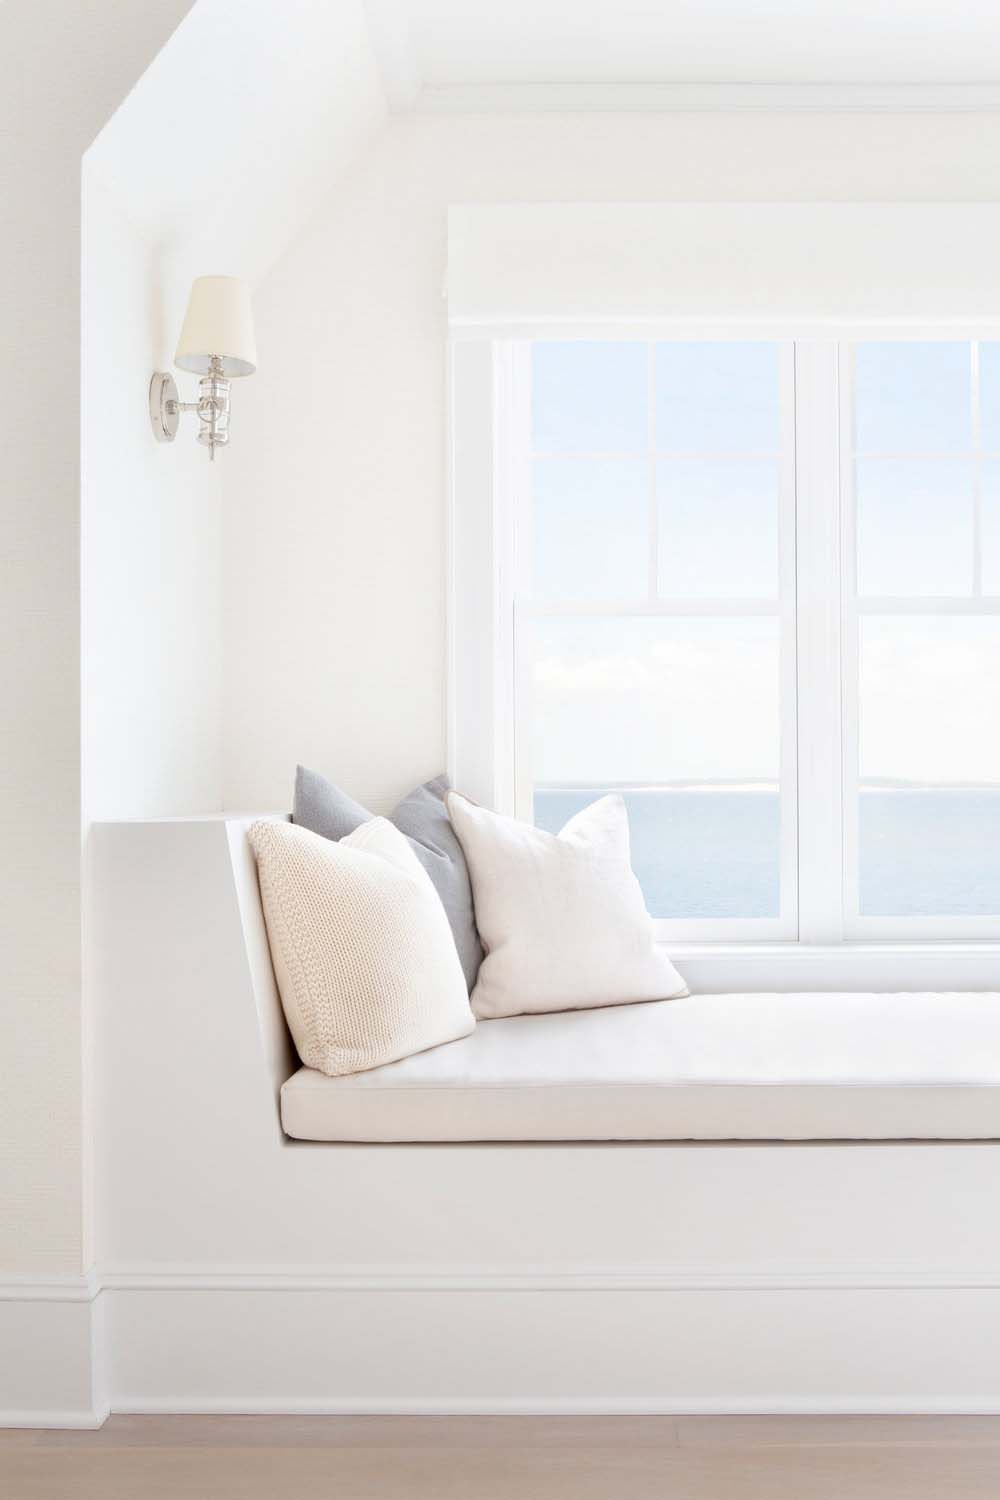 waterfront-beach-style-bedroom-window-seat